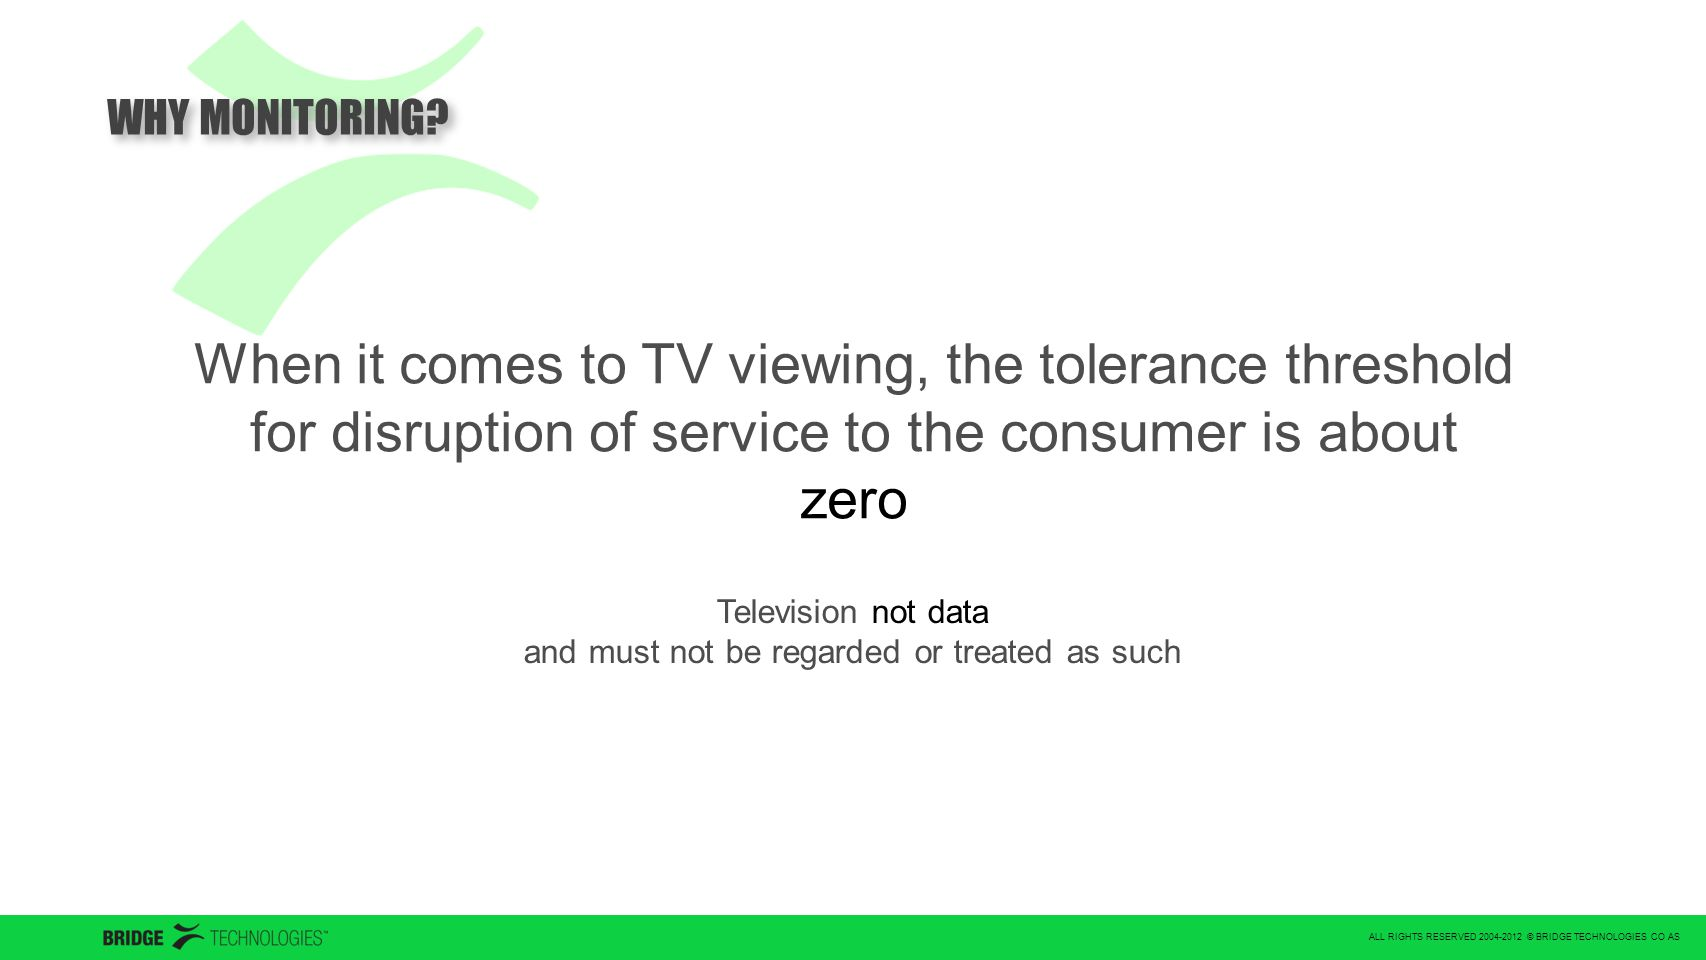 ALL RIGHTS RESERVED 2004-2012 © BRIDGE TECHNOLOGIES CO AS When it comes to TV viewing, the tolerance threshold for disruption of service to the consumer is about zero Television not data and must not be regarded or treated as such WHY MONITORING